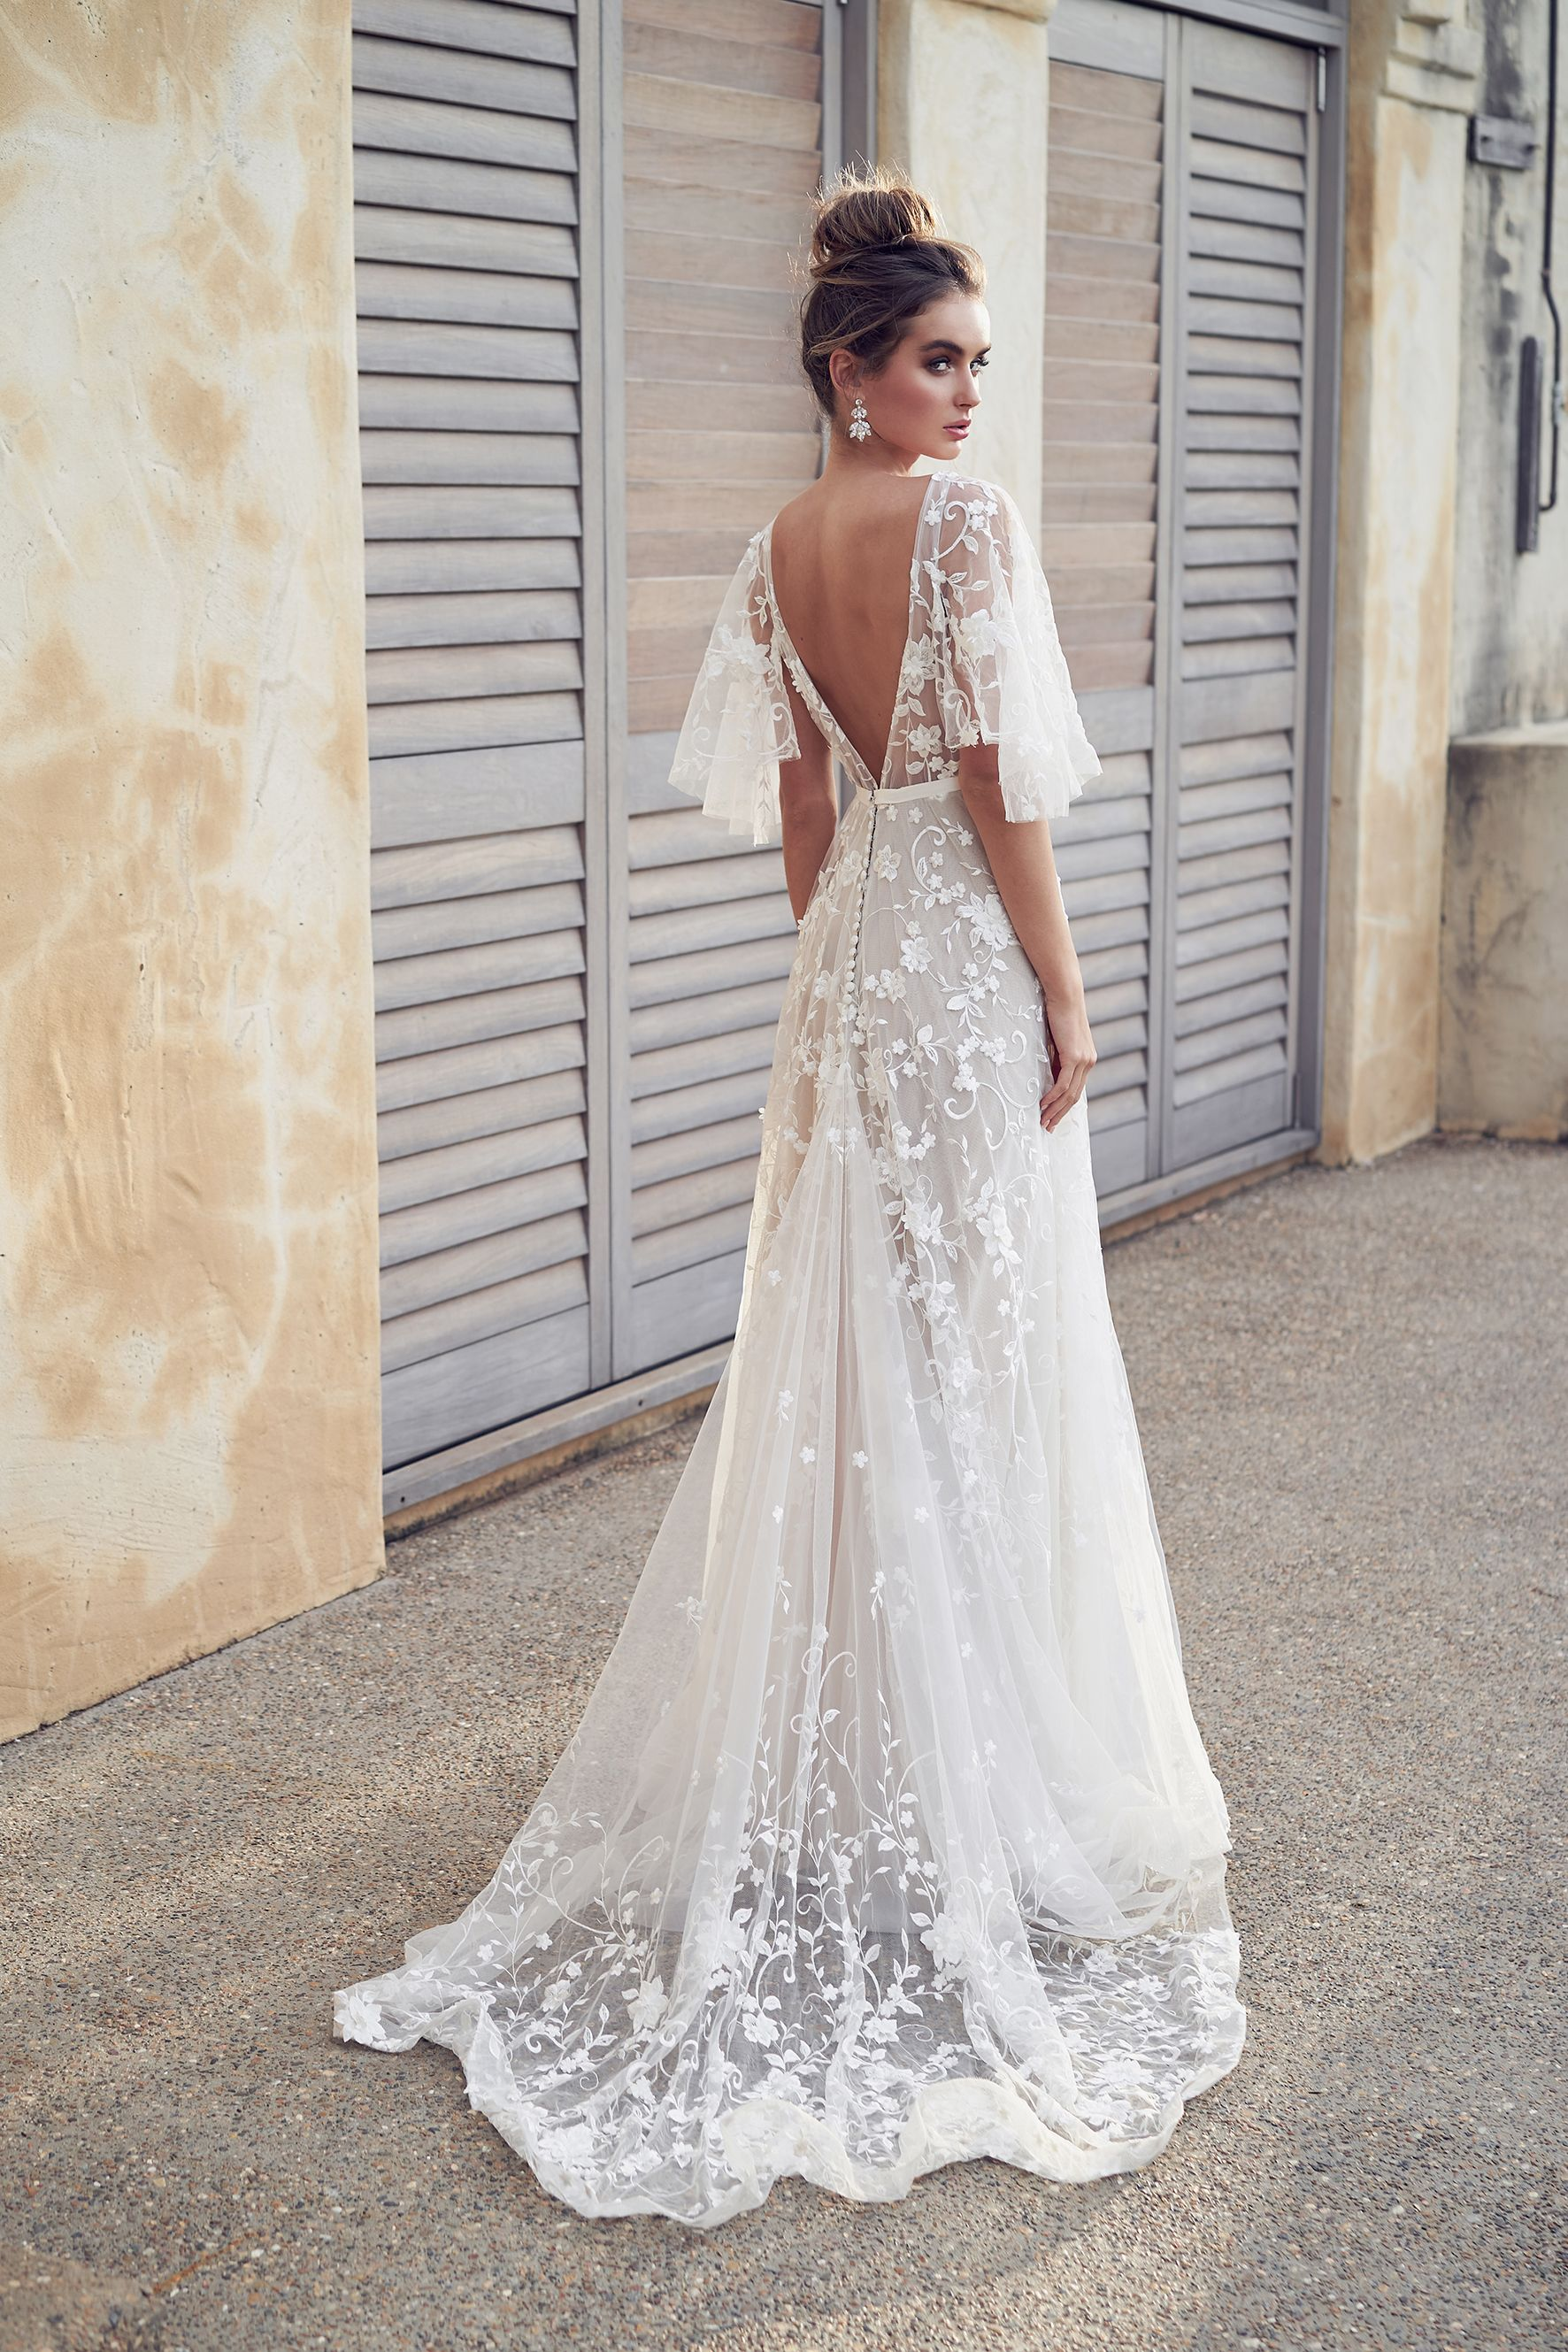 3D Floral Embroidered V-neck A-line Wedding Dress With Draped Sleeves | Kleinfeld Bridal